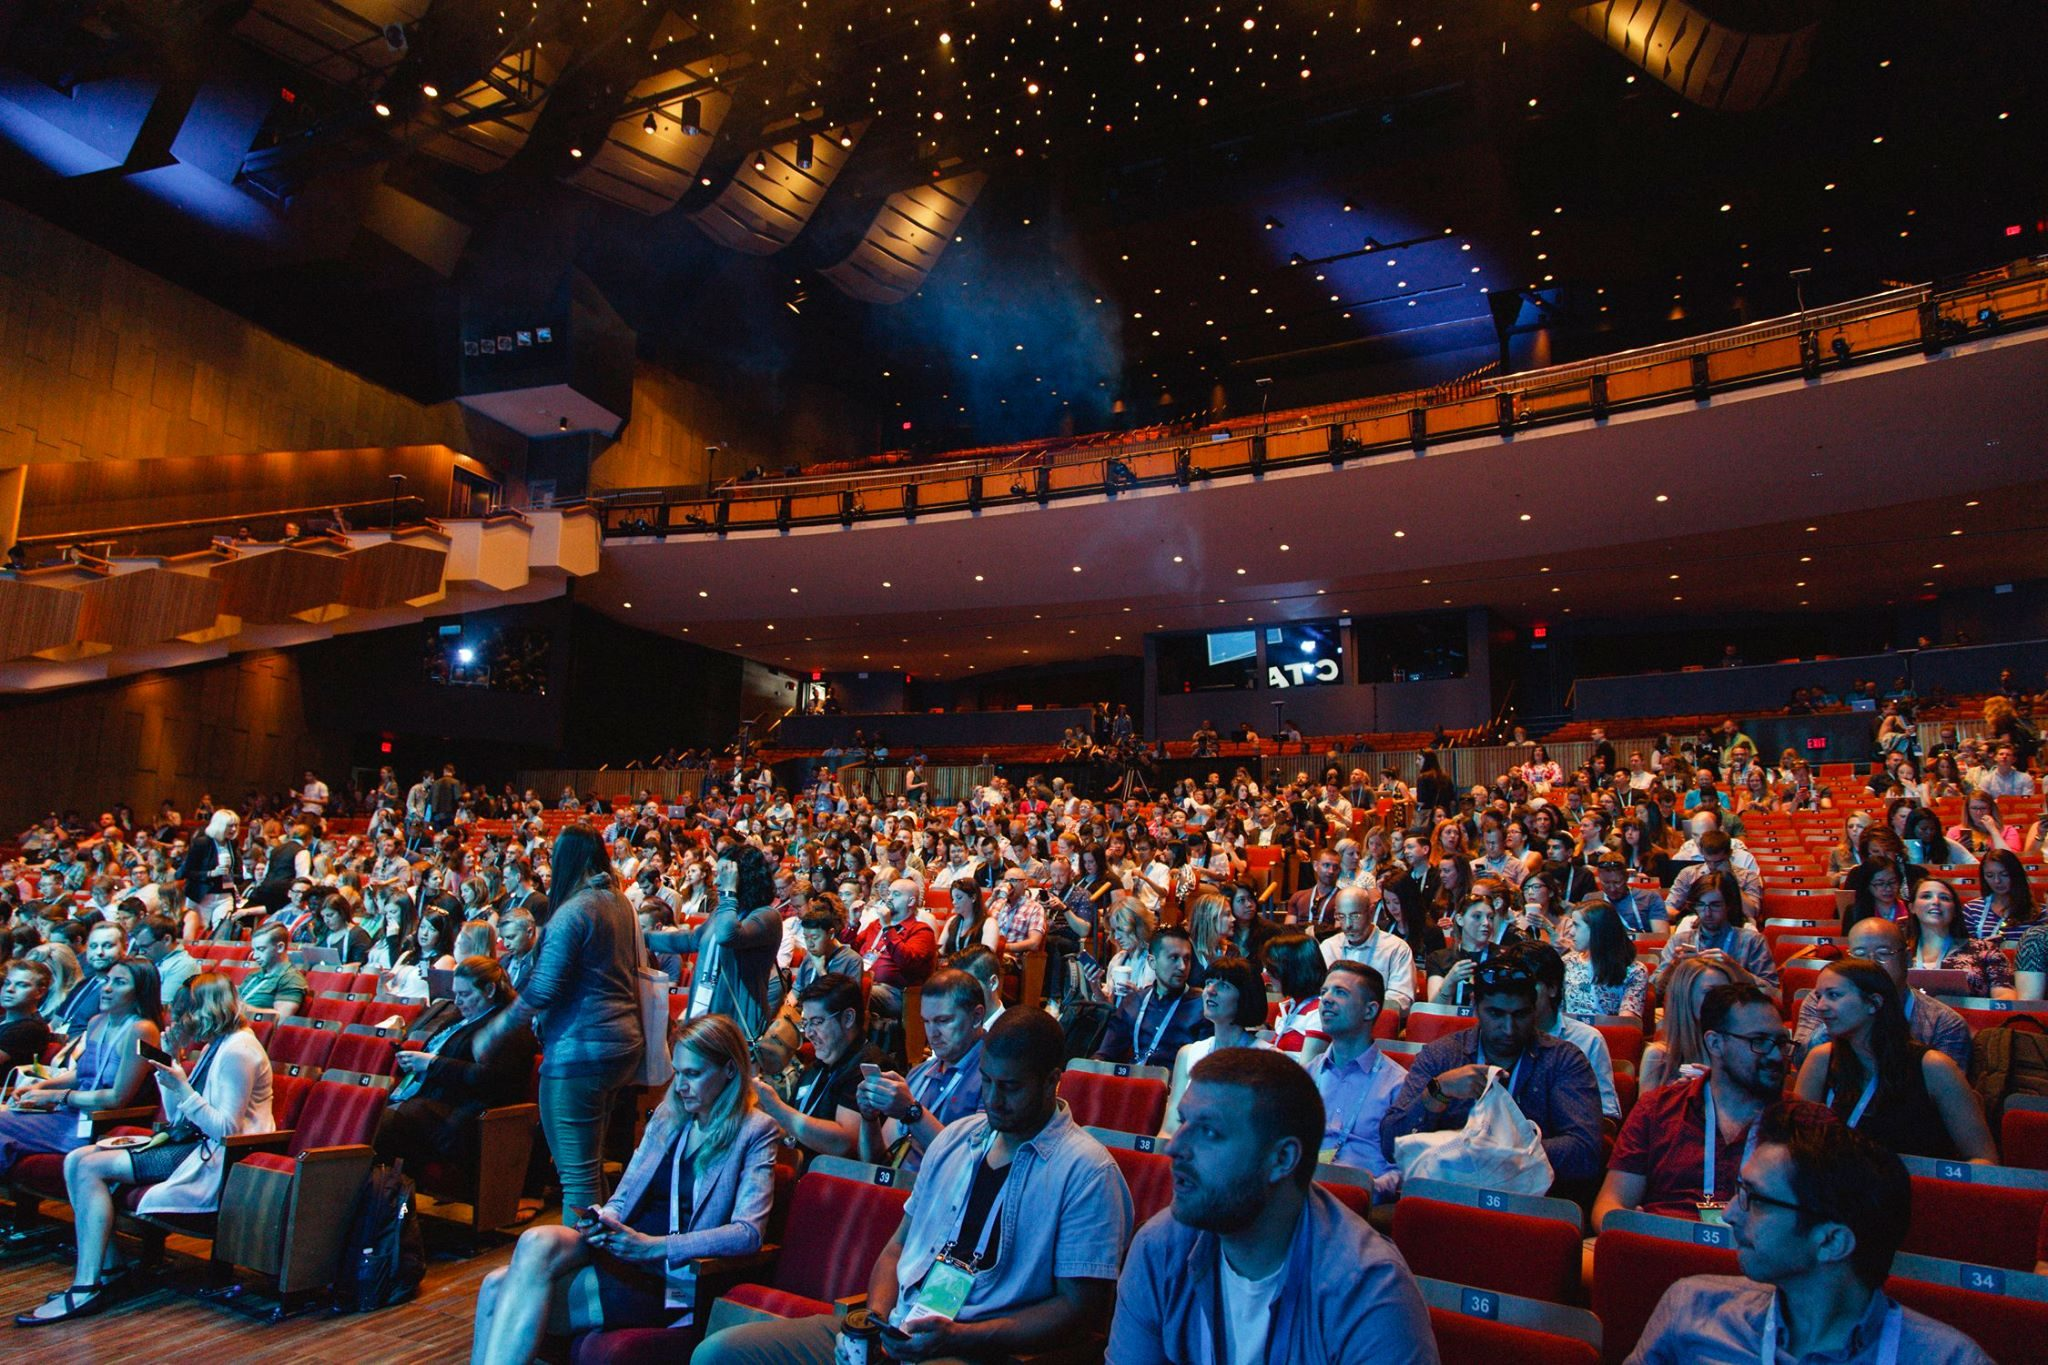 Learn From Digital Marketing Leaders & Experts At CTAConf 2018